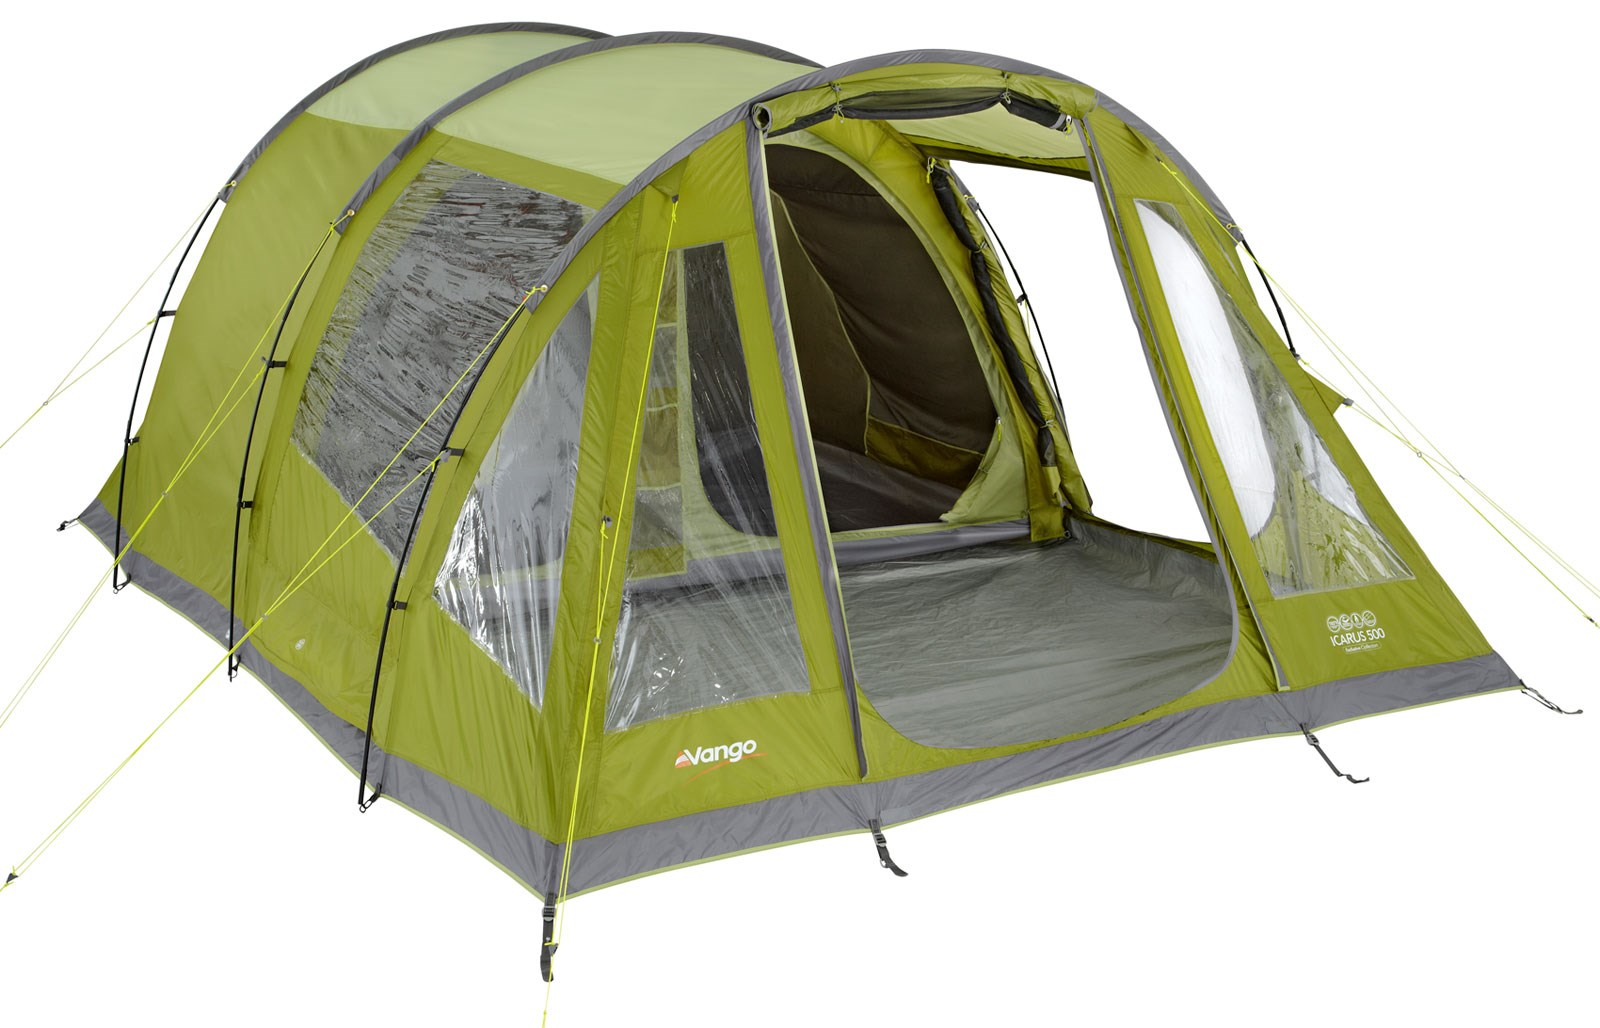 Icarus 500 Deluxe Tent  sc 1 st  GO Outdoors & Tents | Family Festival u0026 Backpacking Tents | GO Outdoors